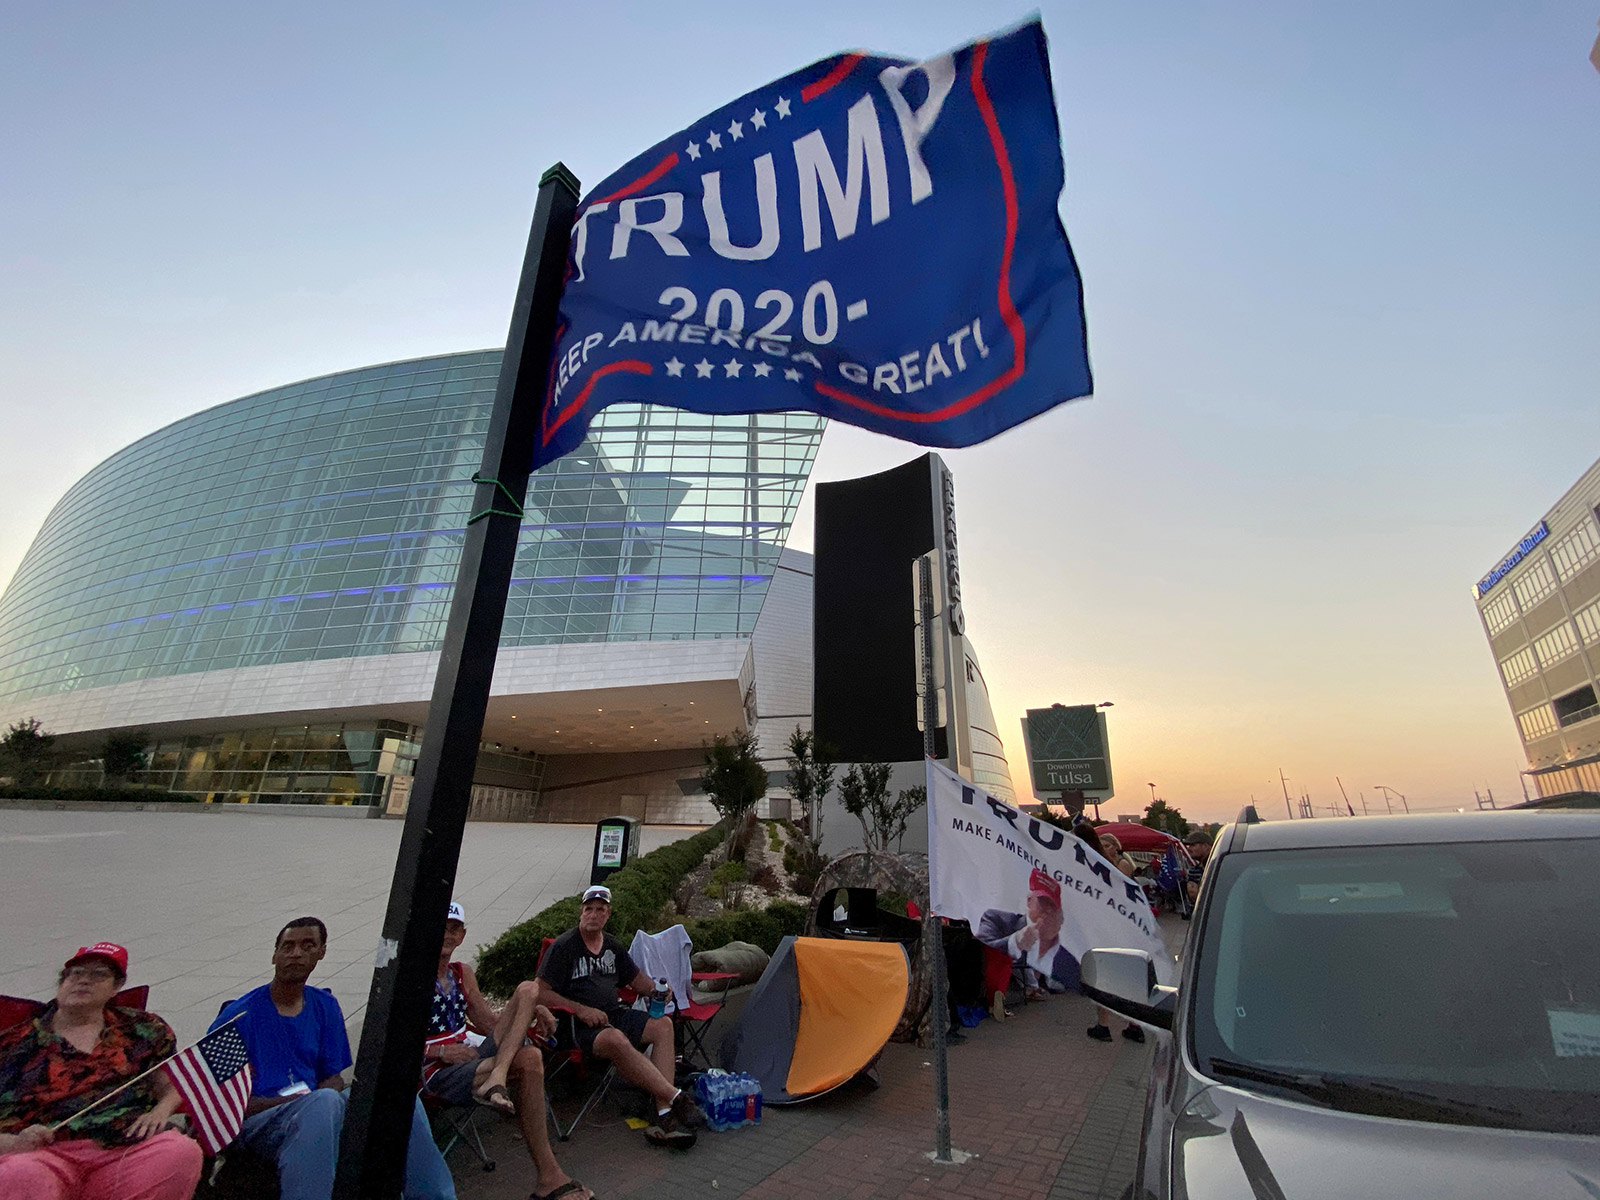 How risky is it to attend a Trump campaign rally during a pandemic?